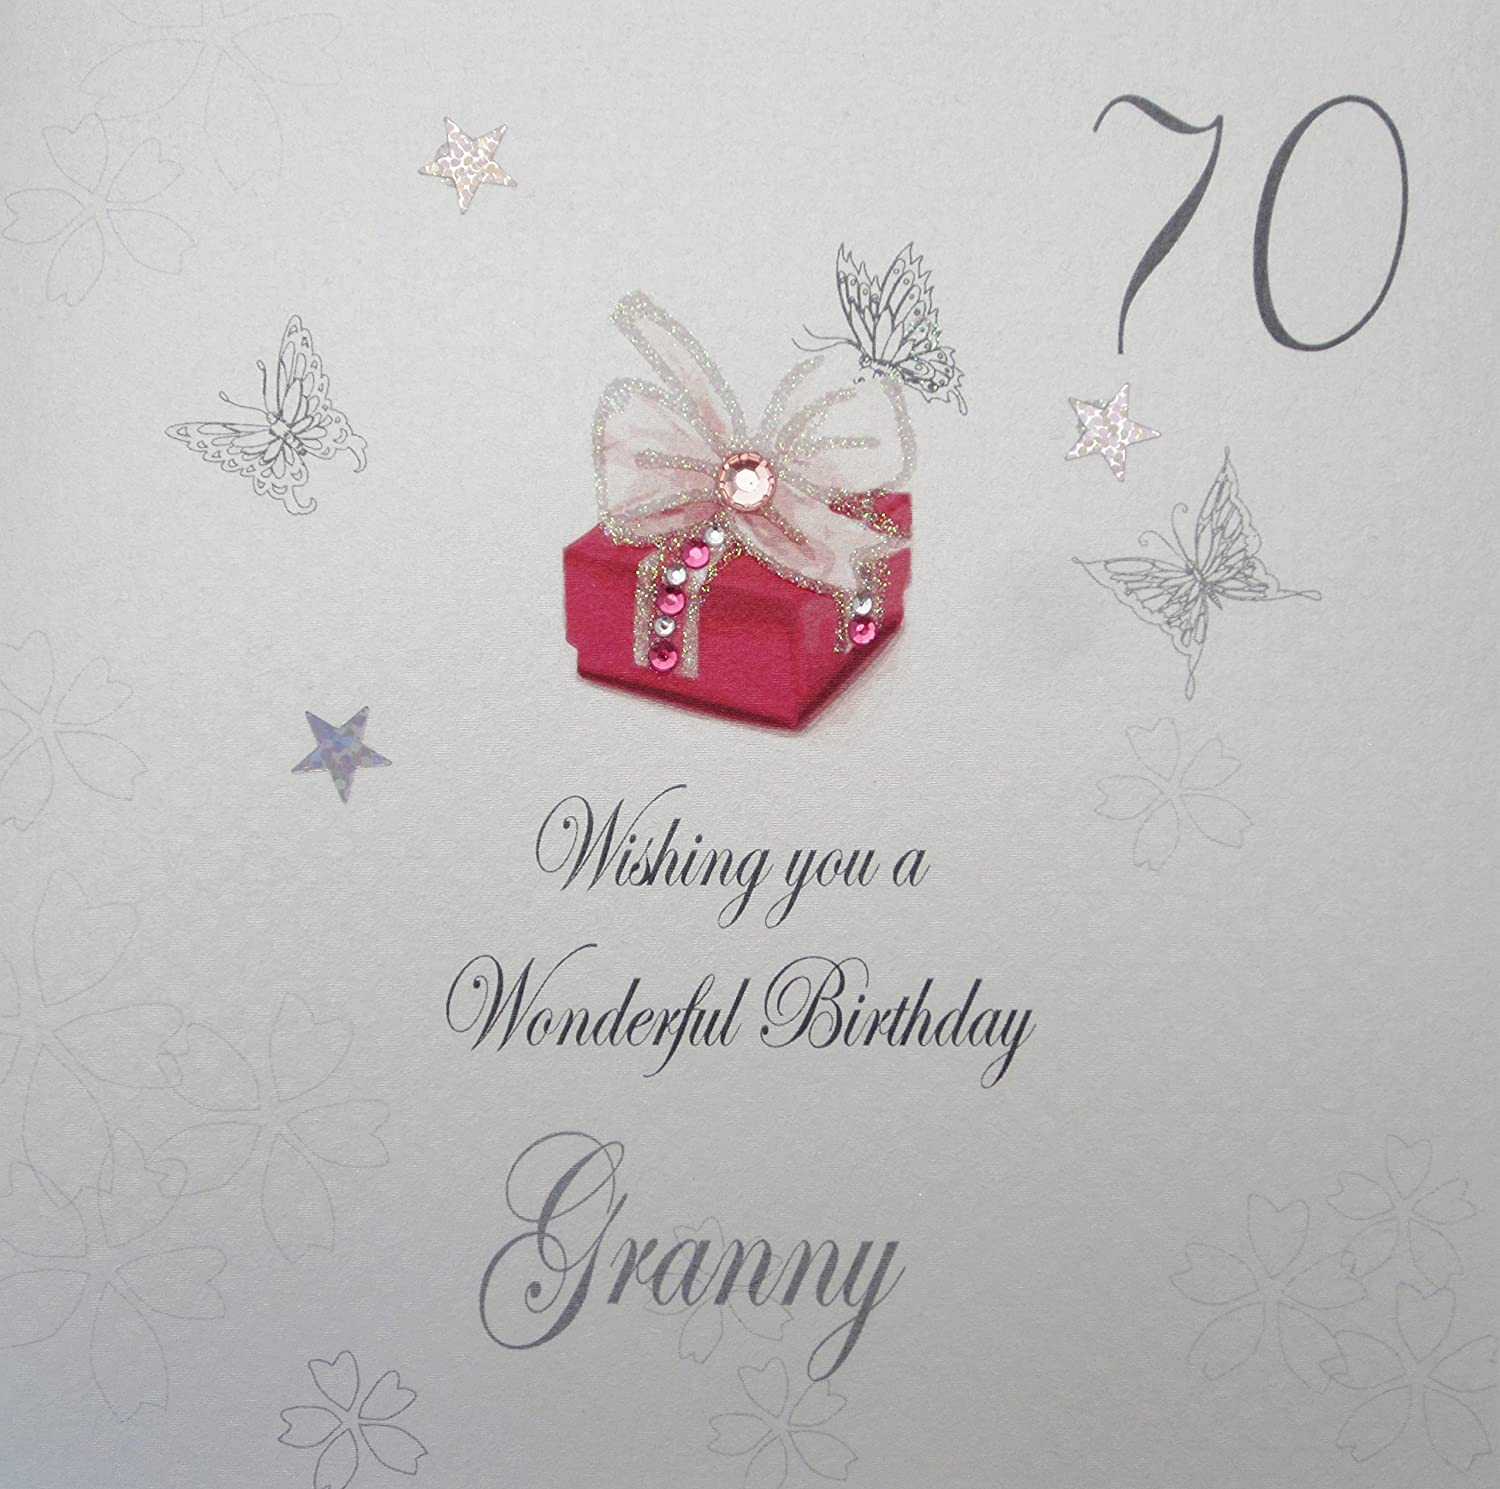 WHITE COTTON CARDS 70 Wishing You A Wonderful Handmade Birthday Card Granny 70th